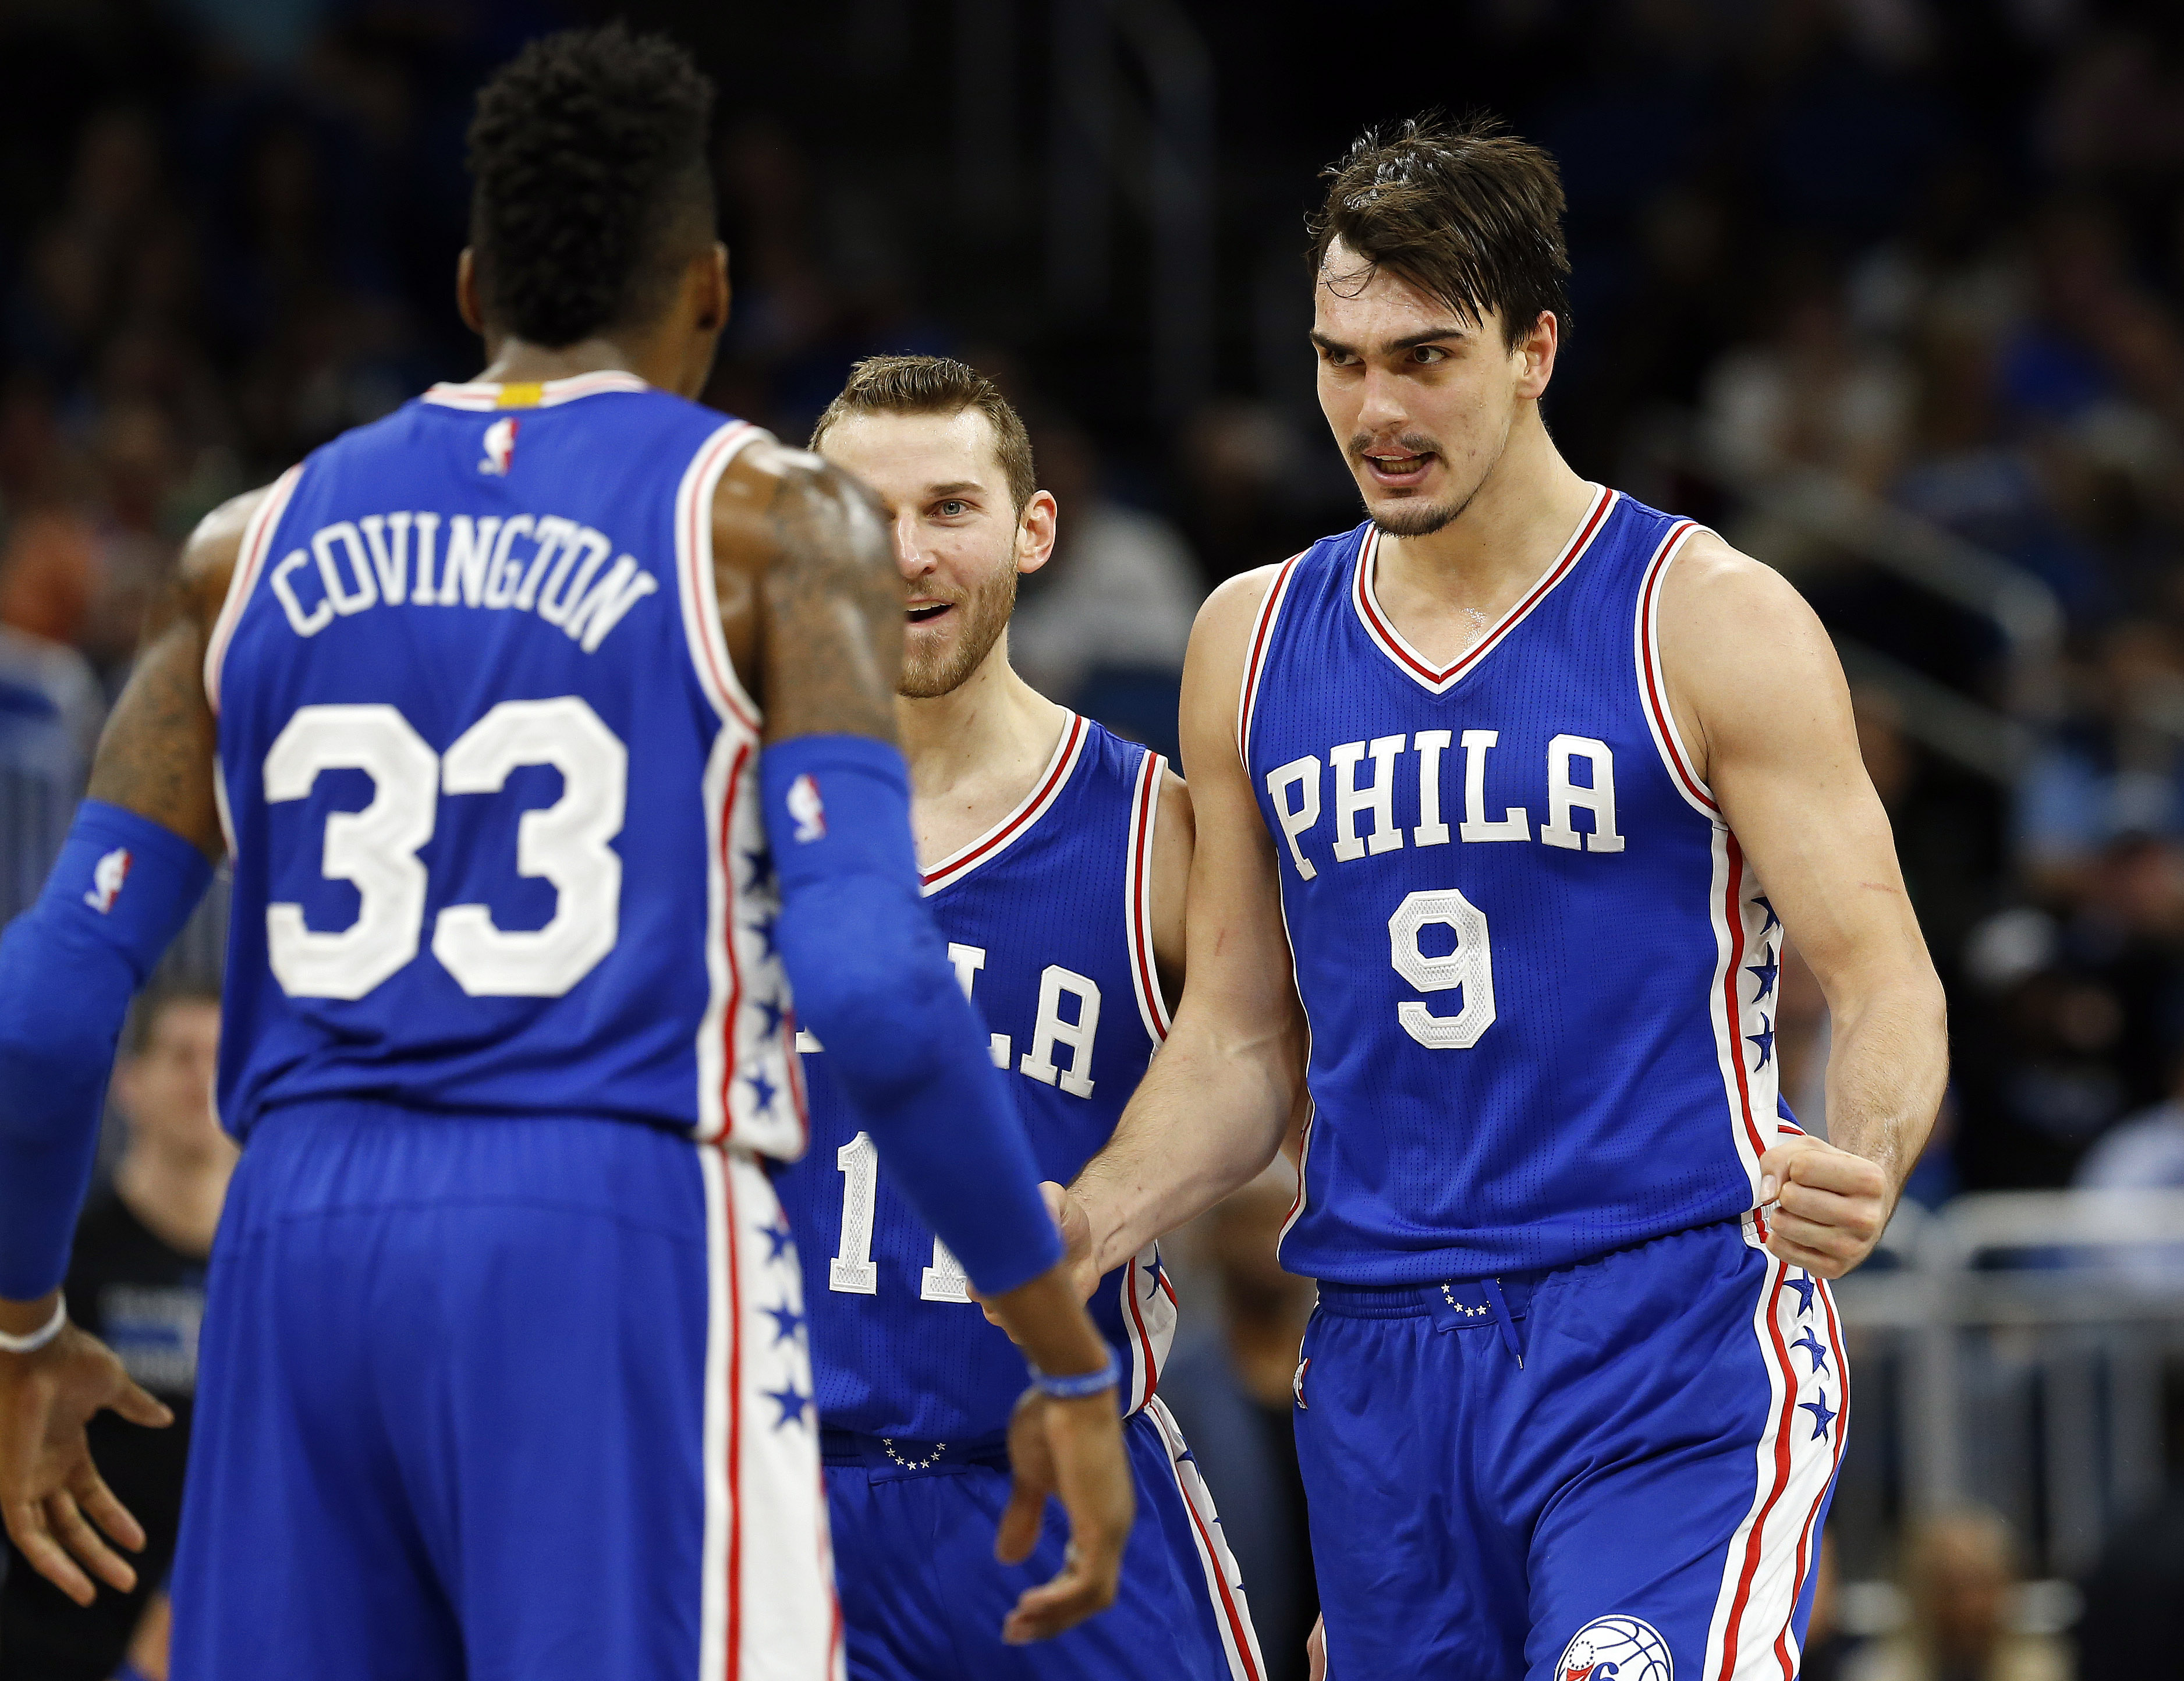 2017-02-10T025819Z_1873902358_NOCID_RTRMADP_3_NBA-PHILADELPHIA-76ERS-AT-ORLANDO-MAGIC